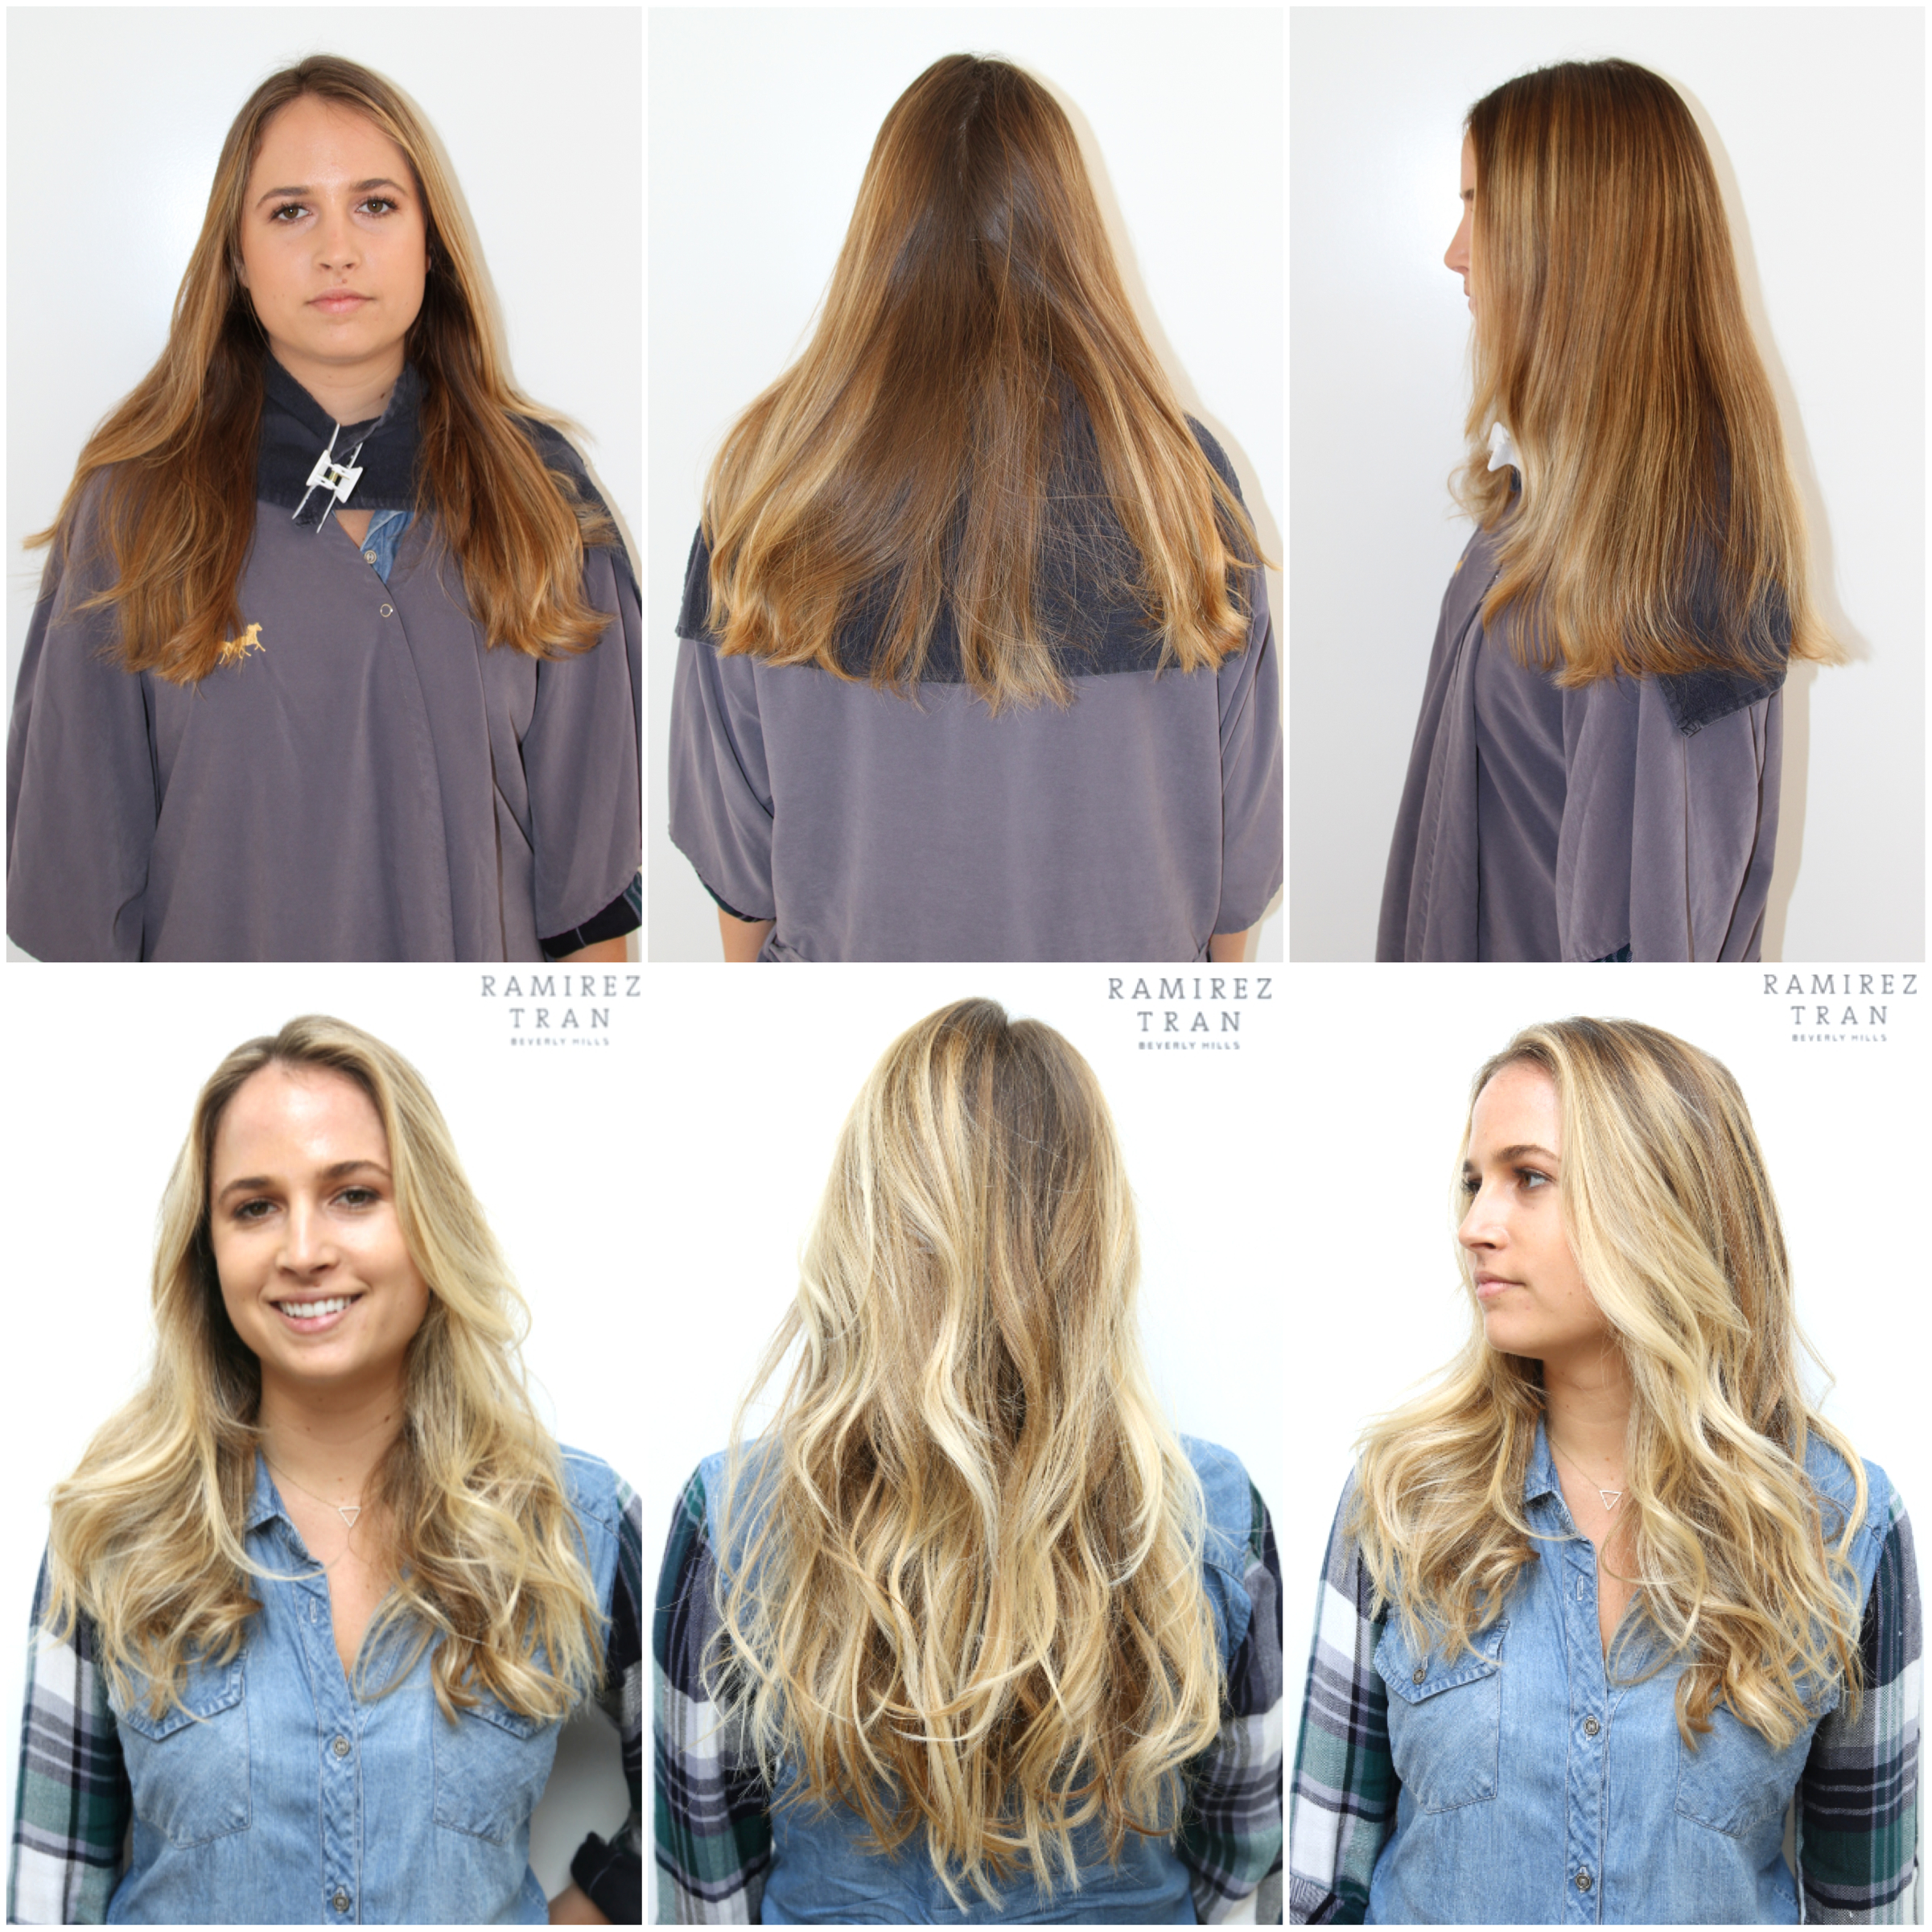 All done in one day the salon in la ramirez tran salon johnny gave this client beautiful sun kissed blonde locks that livened up her facial features and flattered her skin tone her hair before was too warm and pmusecretfo Image collections